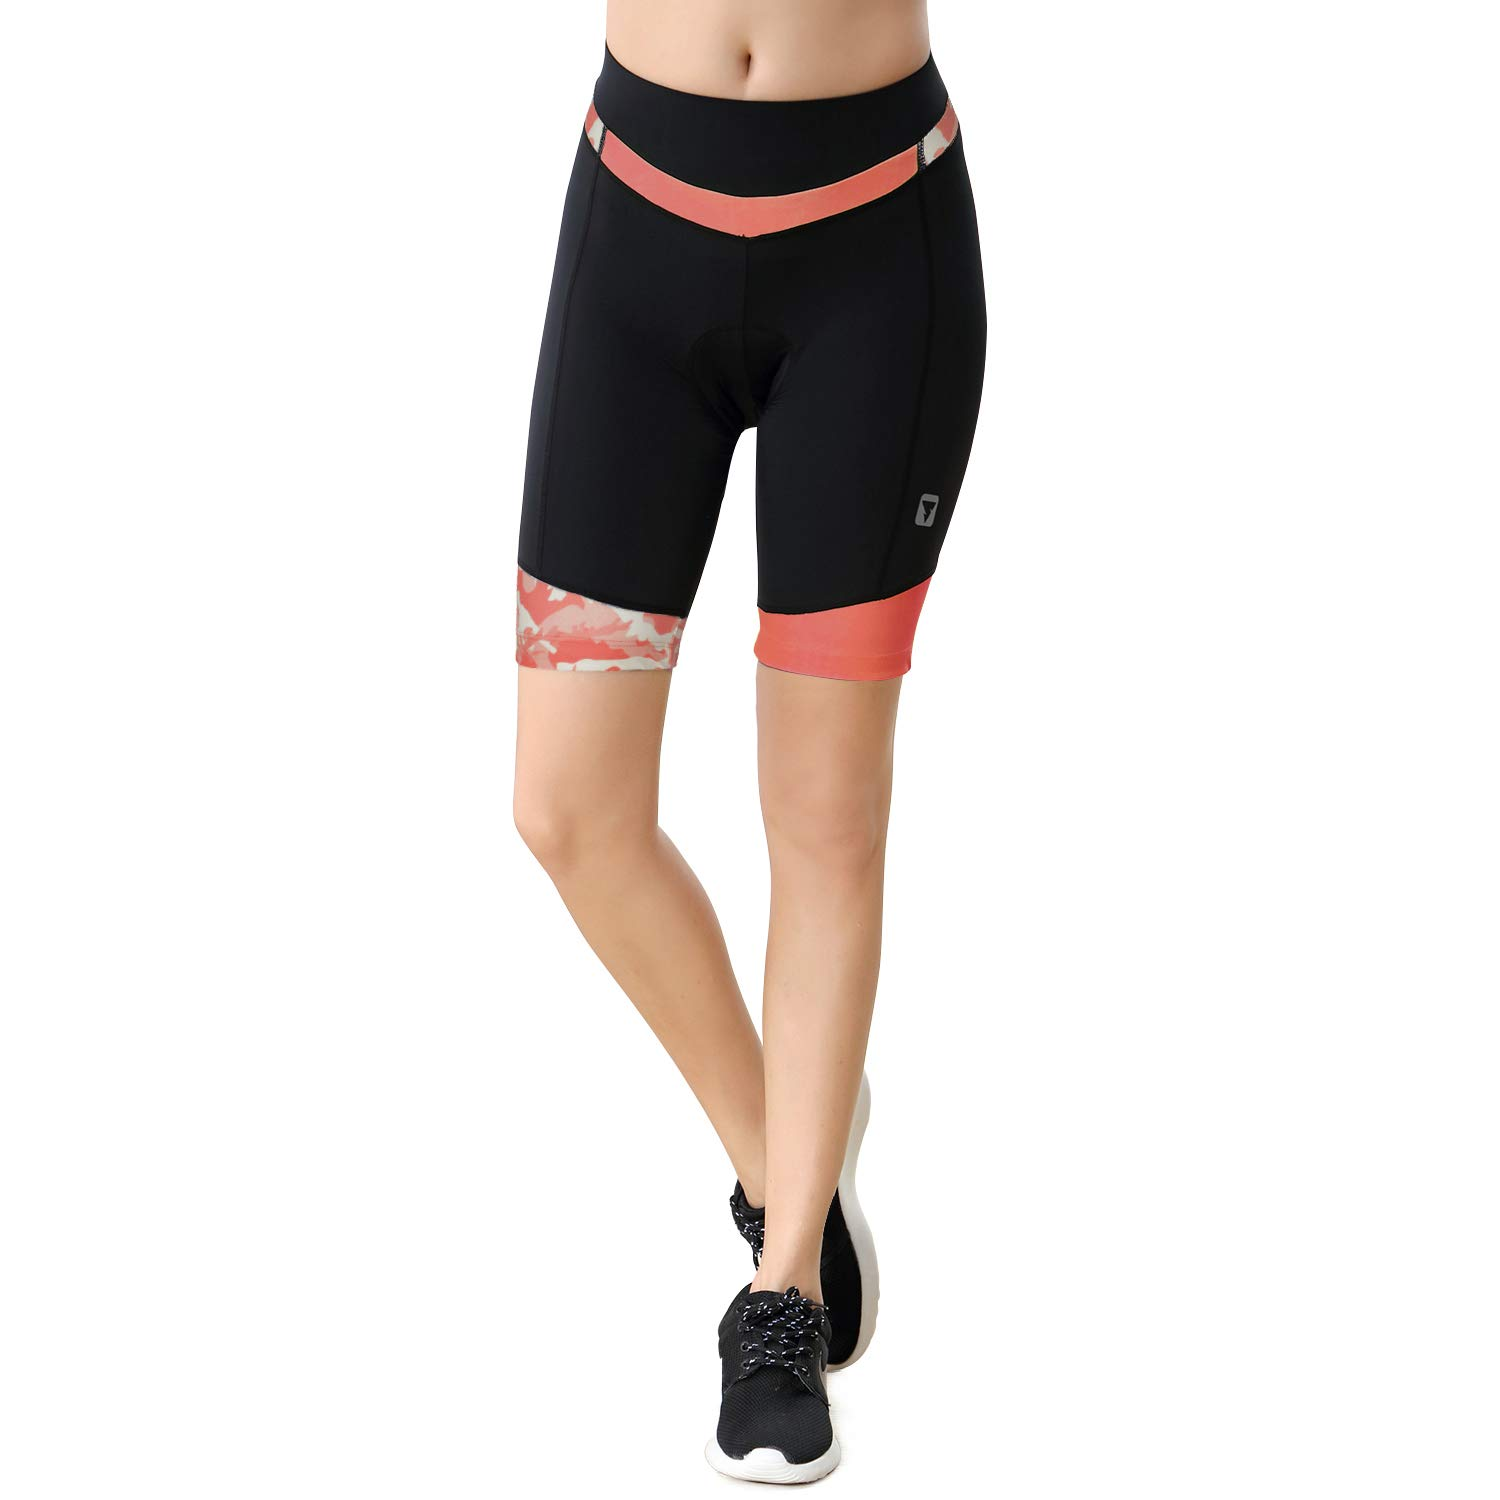 Womens Cycling Shorts with 3D Padded Bike Shorts with Reflective Elements Shorts271